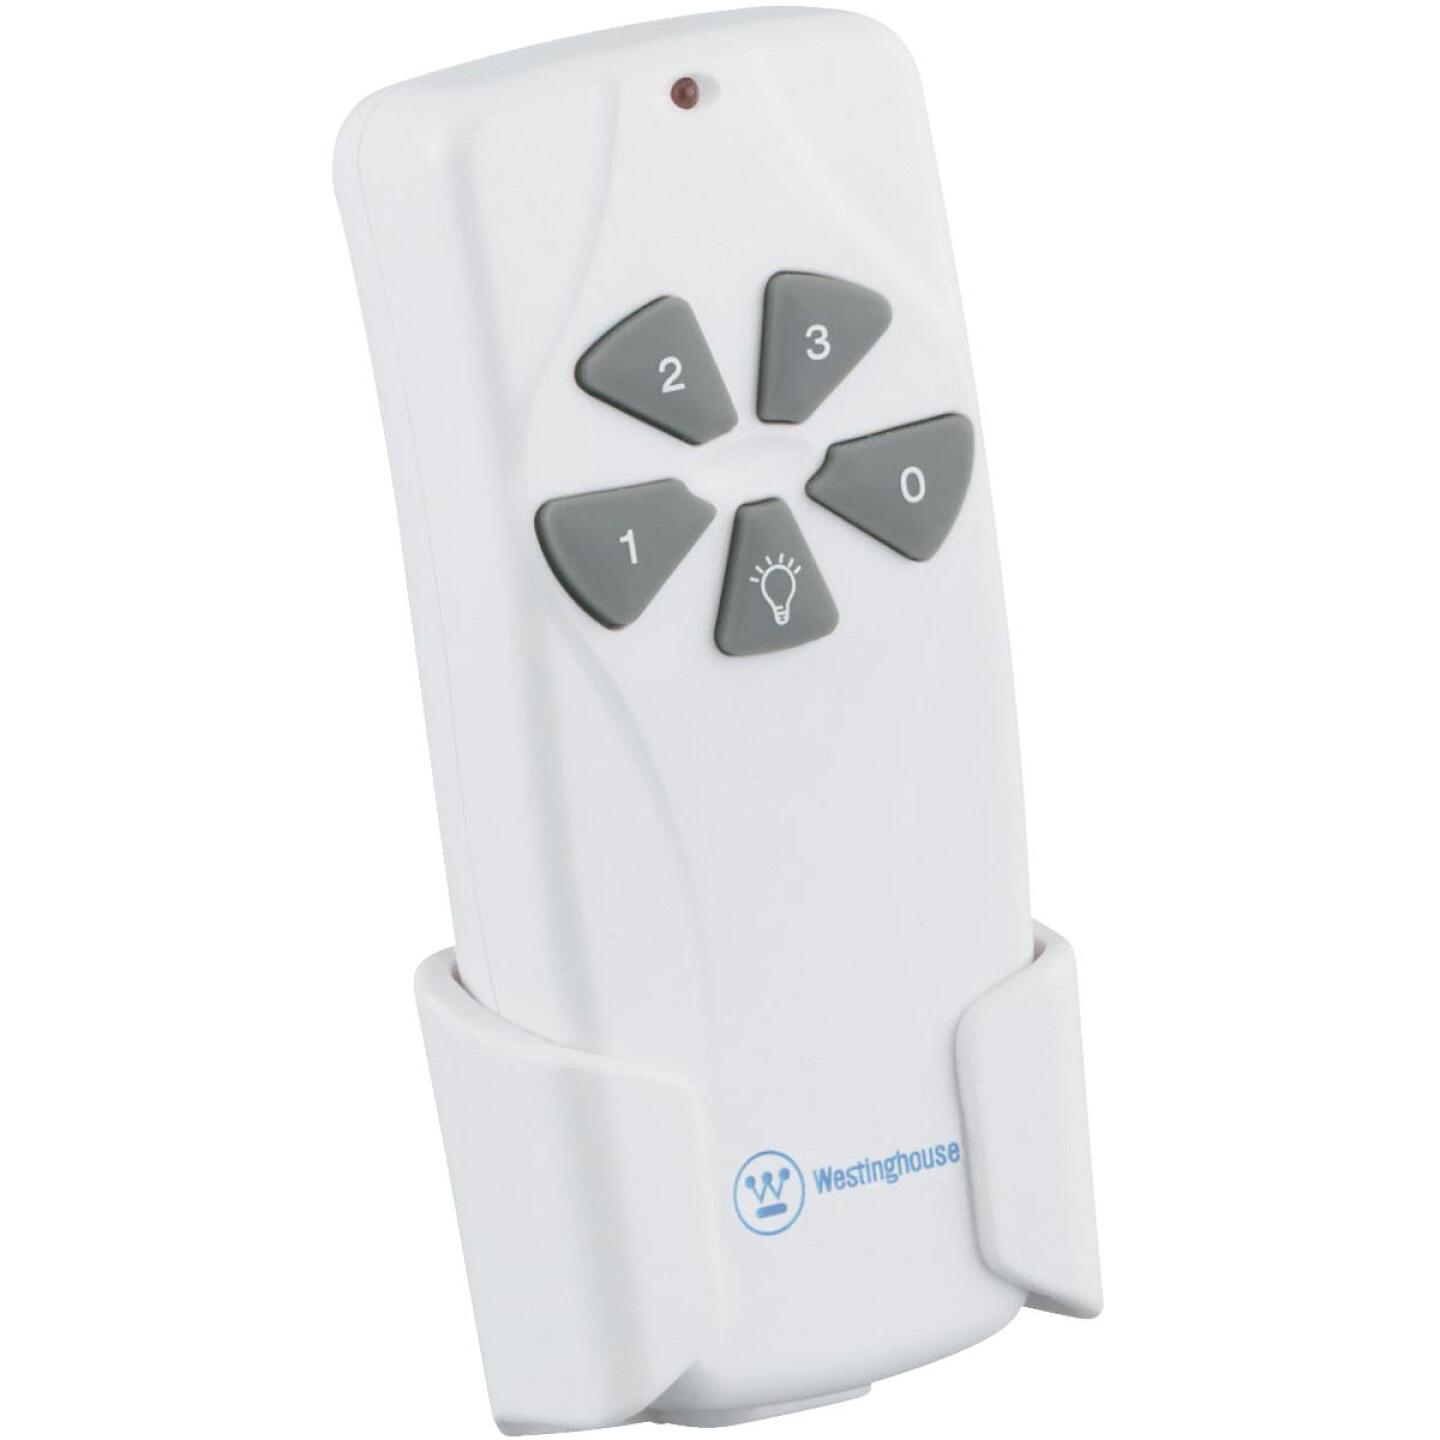 Westinghouse White Universal 3-Speed Ceiling Fan Remote Control Image 1